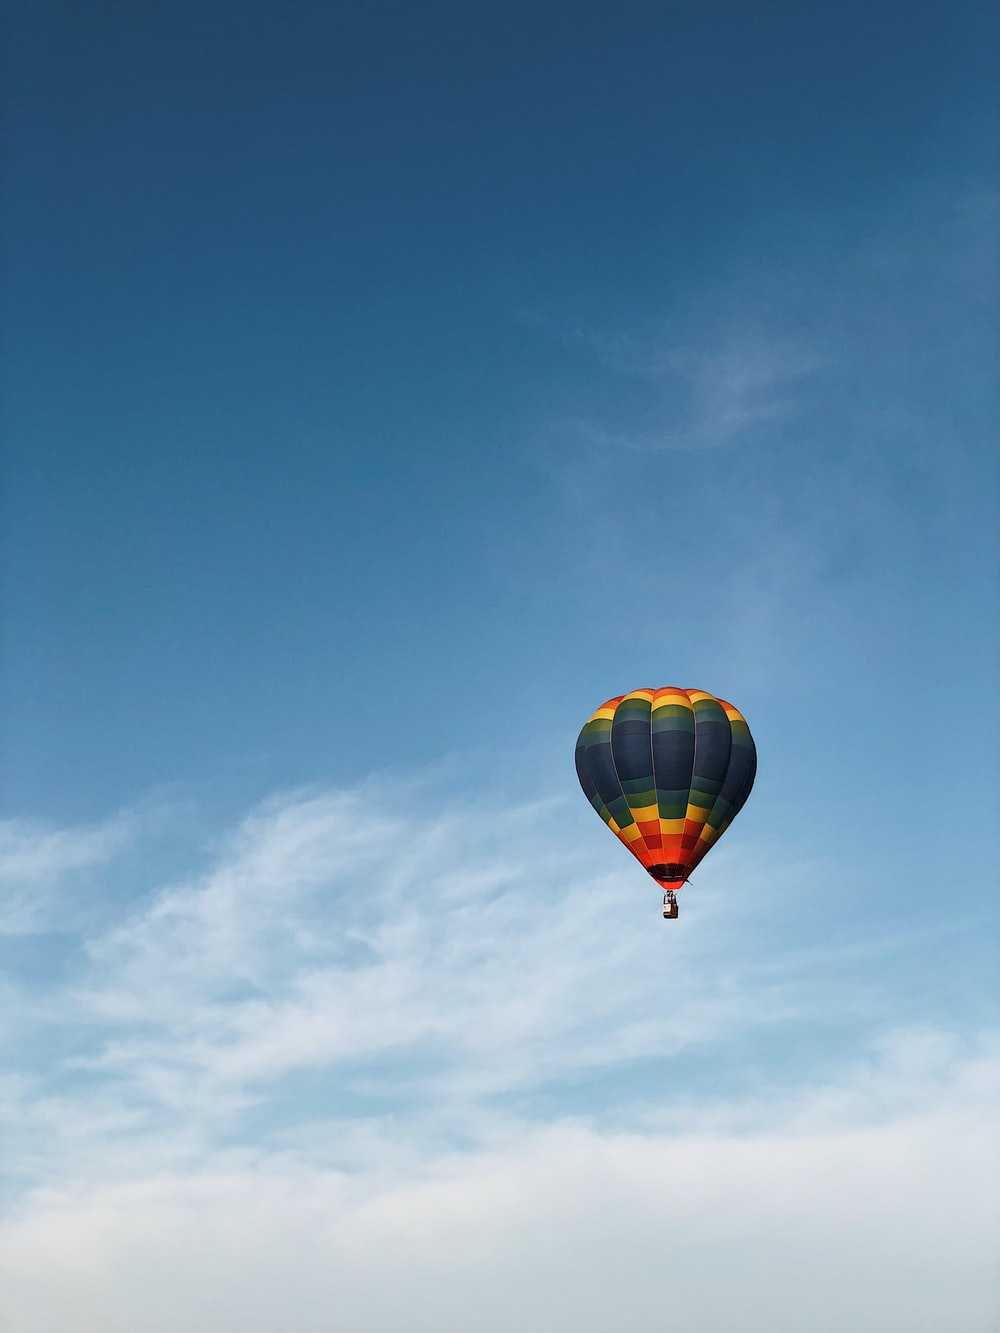 multicolored hot air balloon on cloudy sky